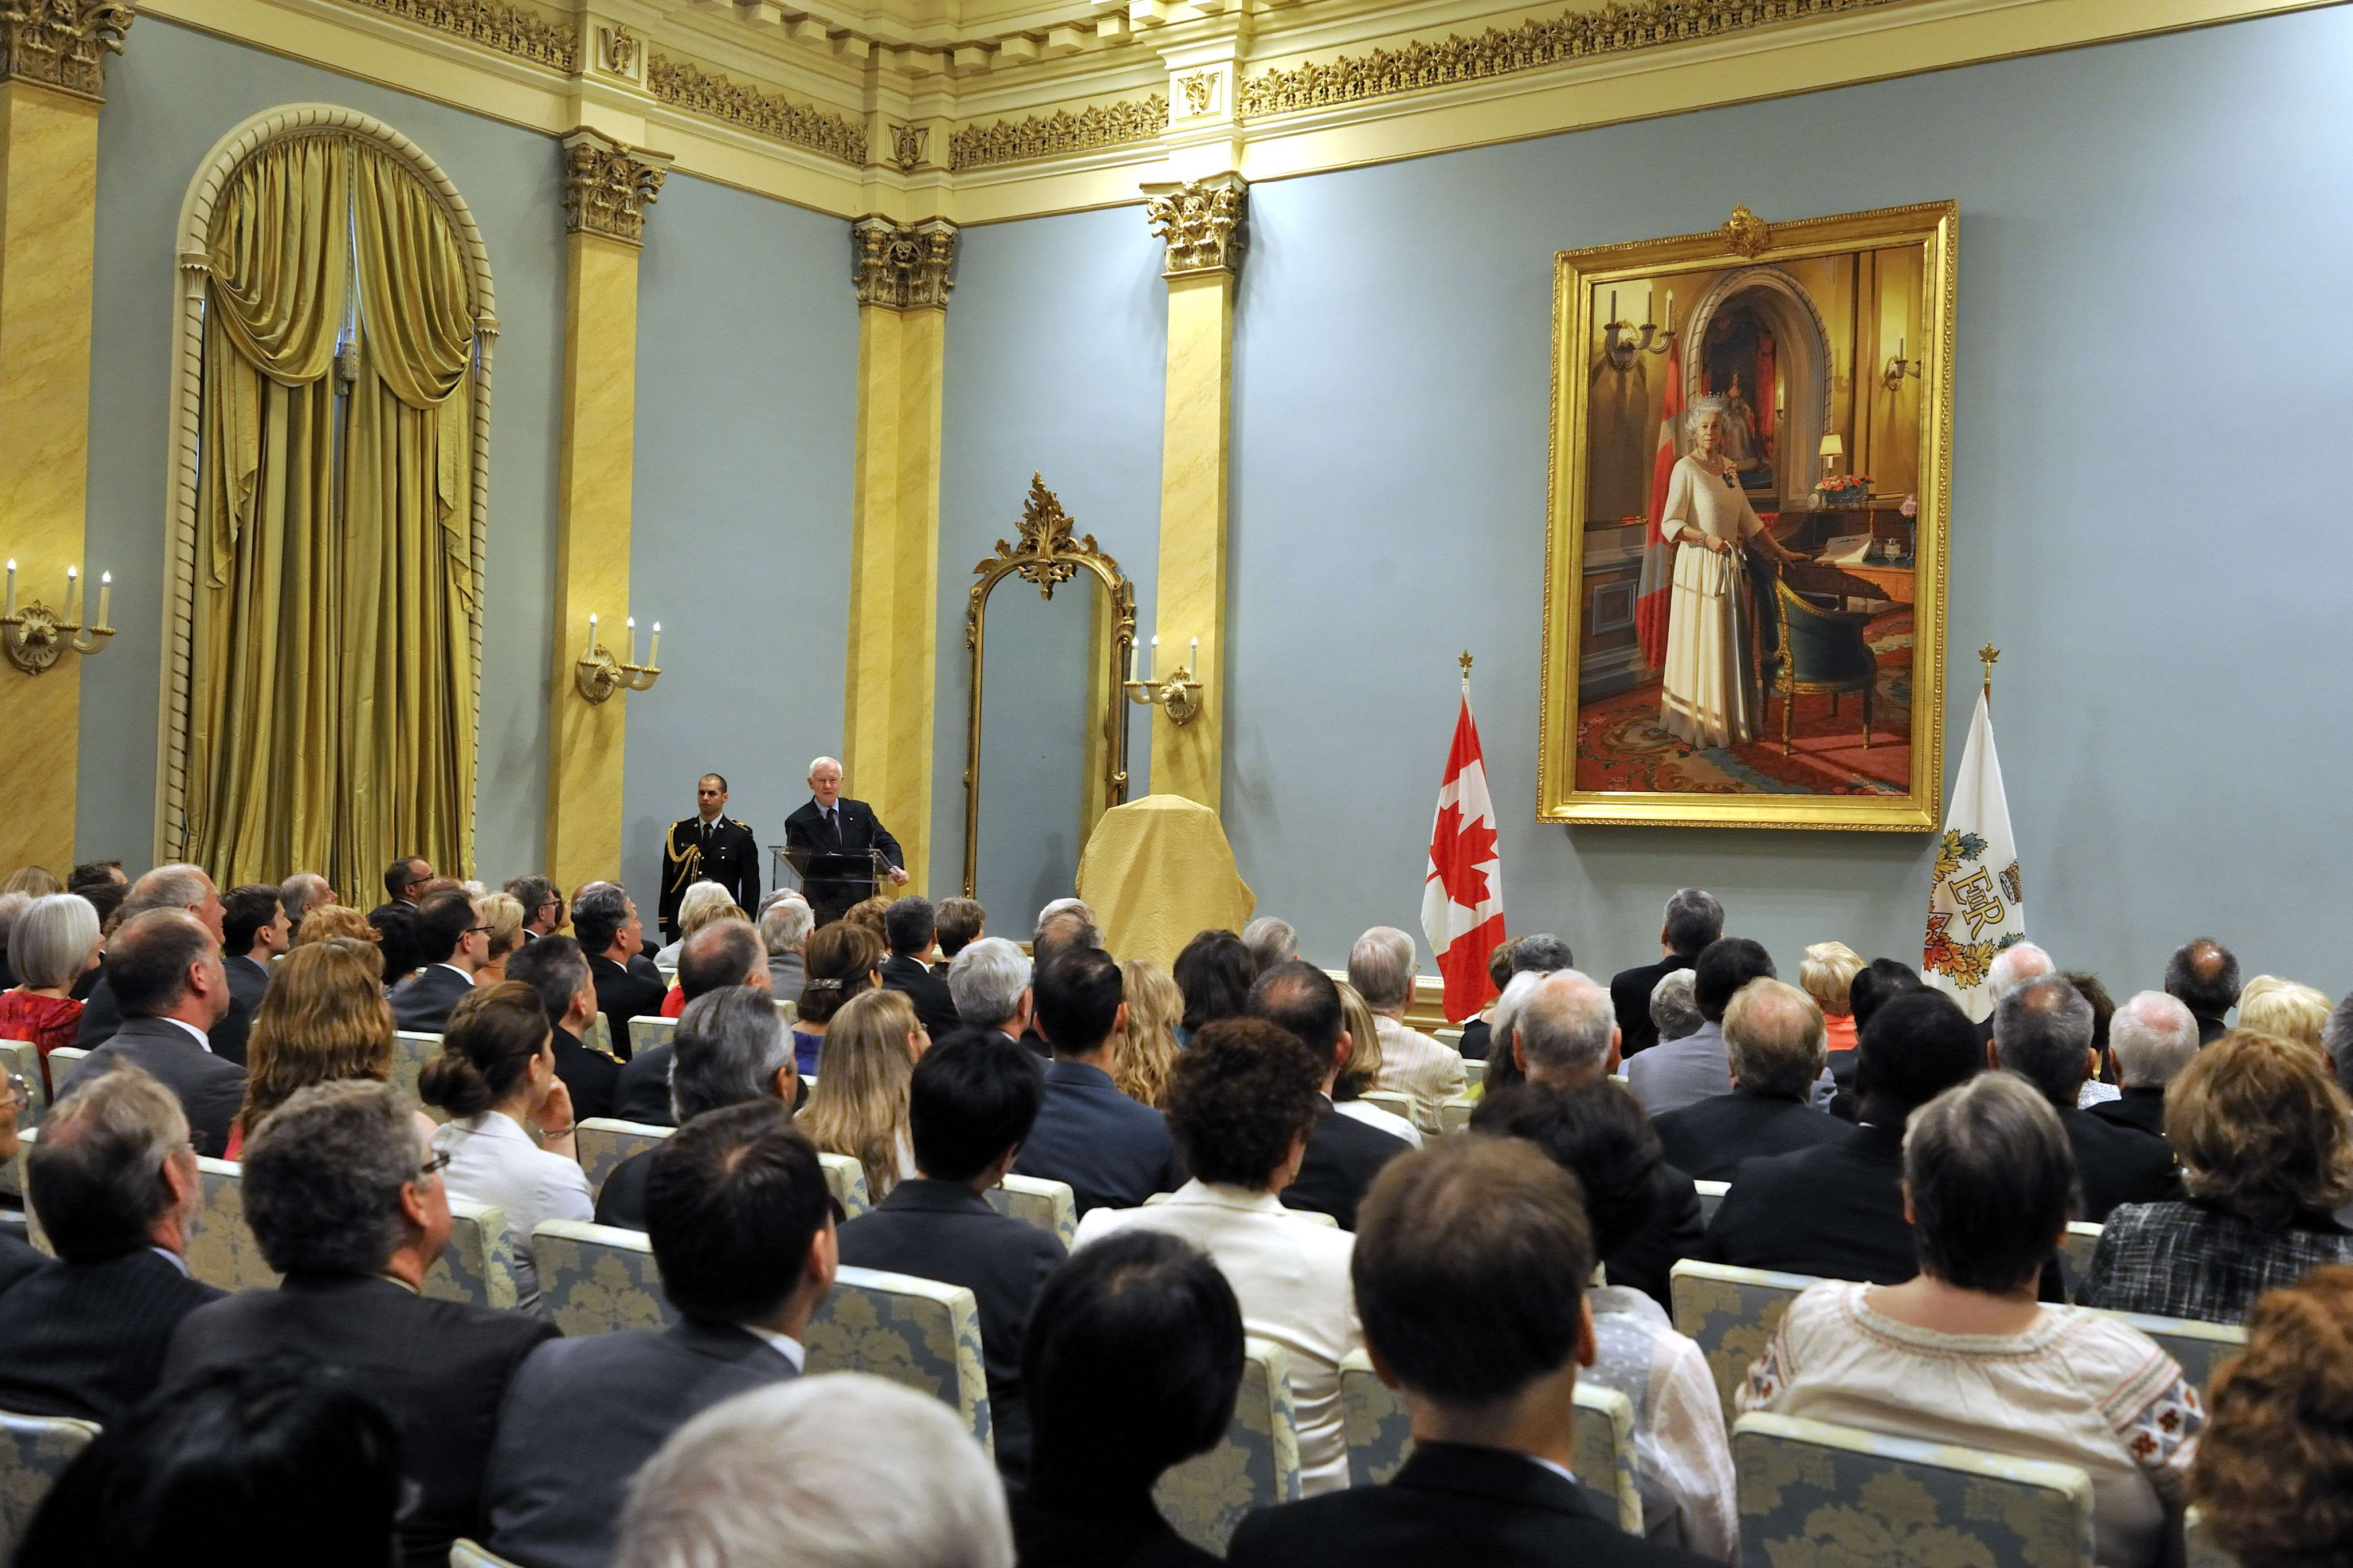 Their Excellencies hosted an event in celebration of the Diamond Jubilee of Her Majesty Queen Elizabeth II, at Rideau Hall. It was the occasion to highlight the installation of the new painting of Her Majesty in the Ballroom.